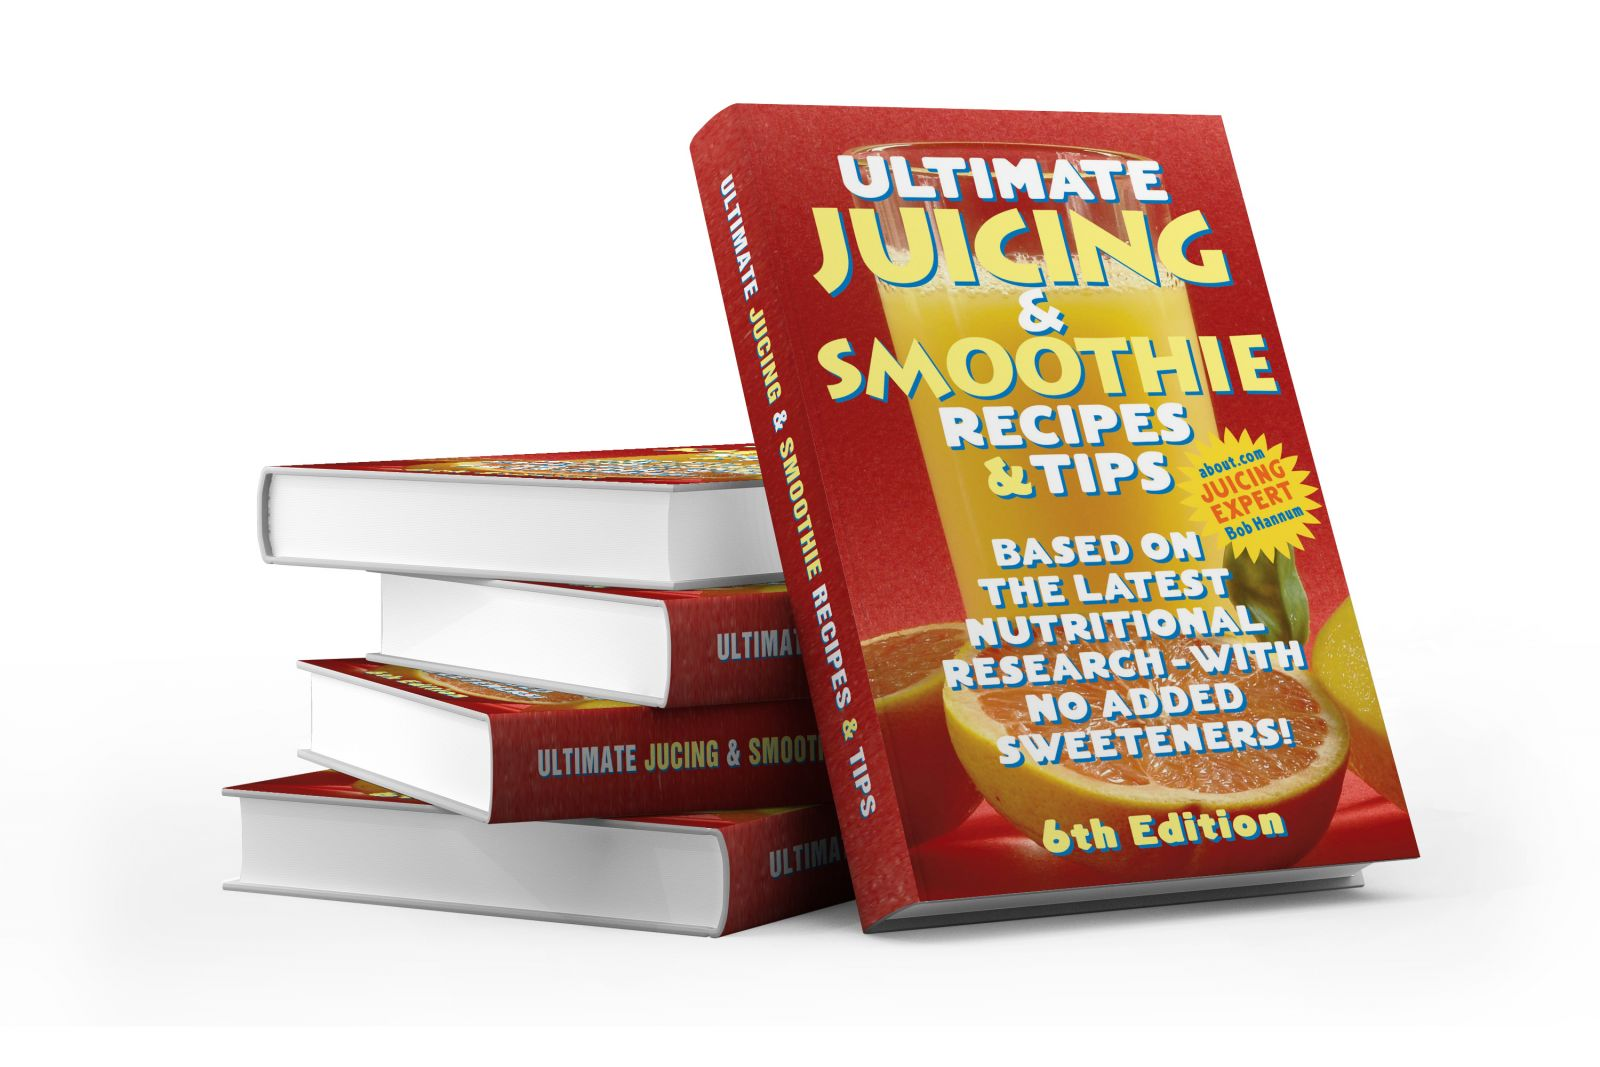 For Juicing & Smoothie Recipes CLICK PHOTO BELOW